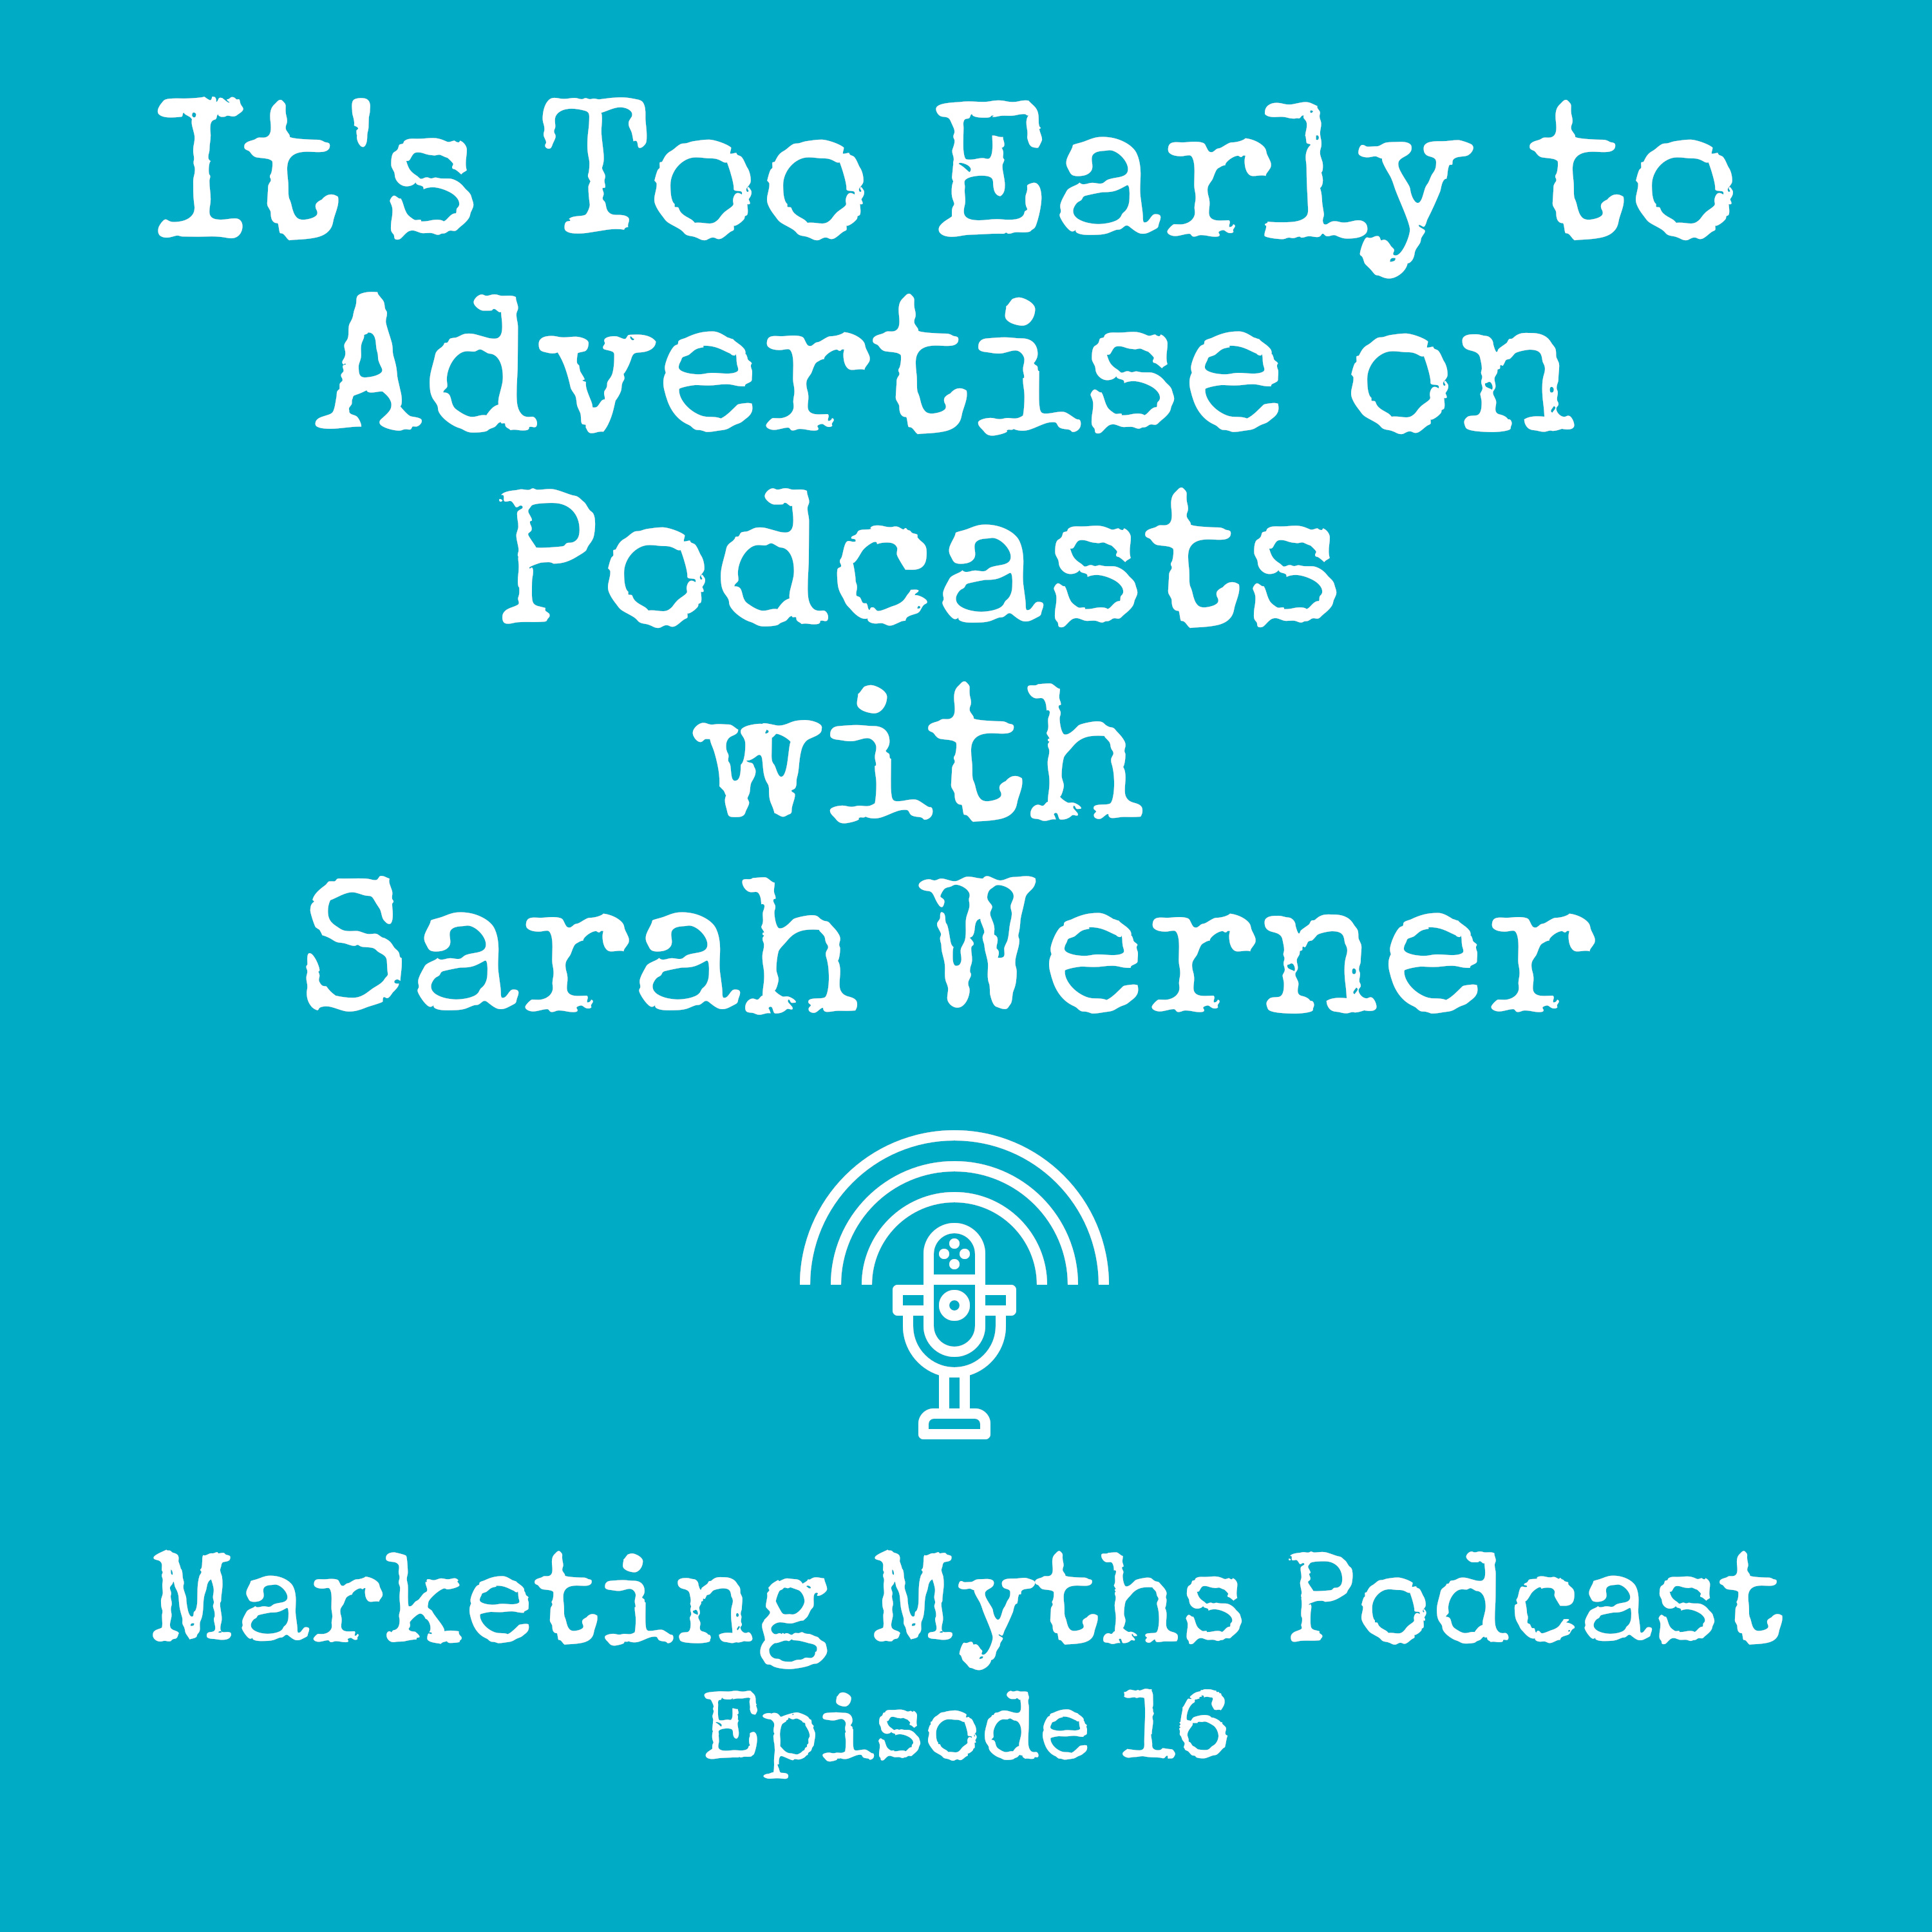 Podcast Advertising is Too Young with Sarah Werner